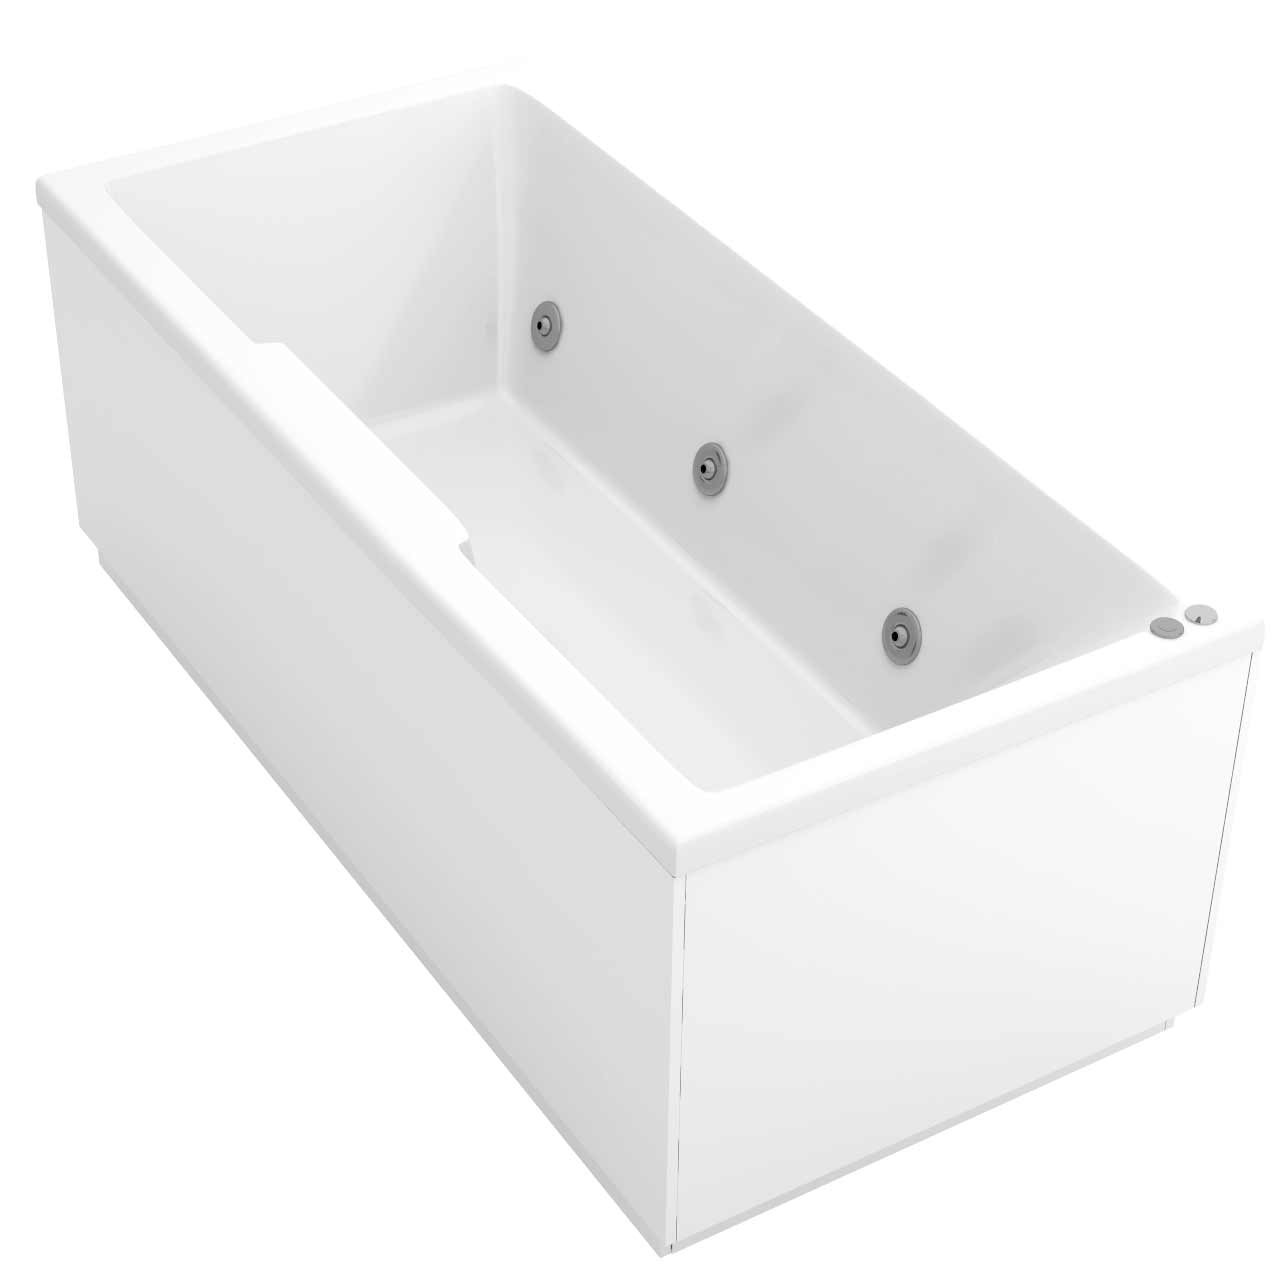 Legend Right Hand 6 Jet Chrome V-Tec Whirlpool Bath 1500x700mm